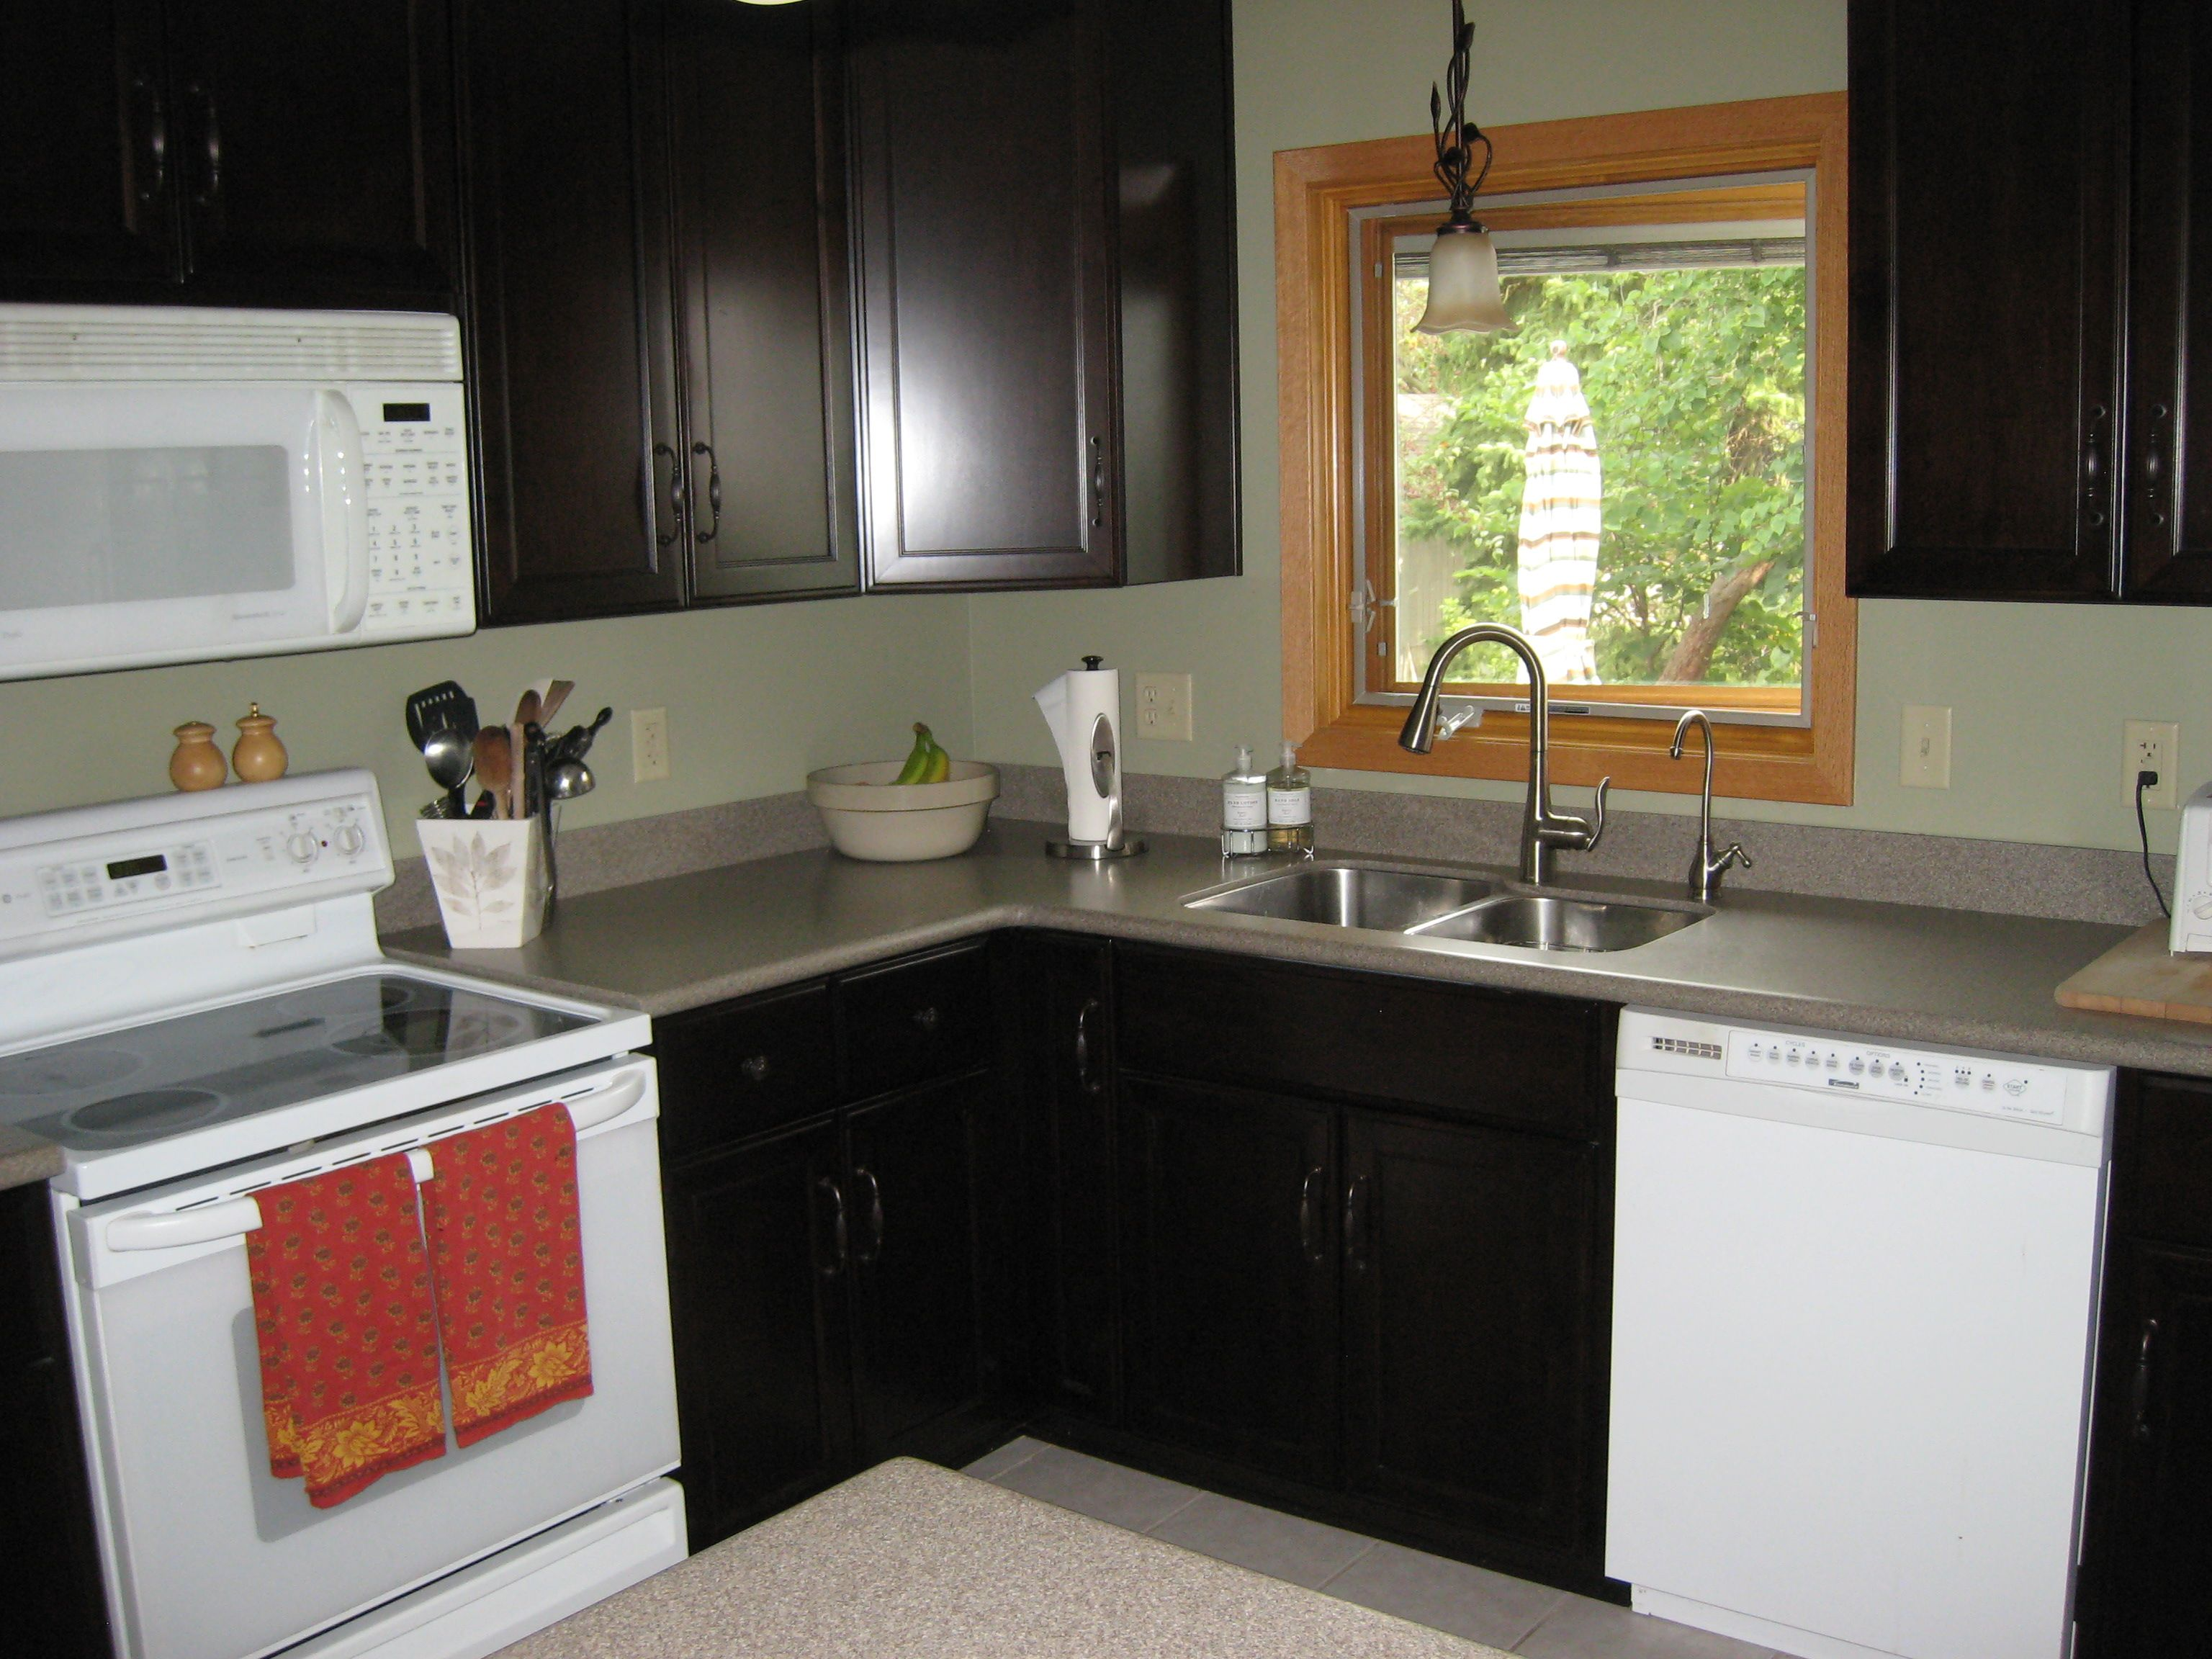 Appliances For Small Kitchens Square Kitchen Table L Shaped Like Yours With Dark Cabinets And